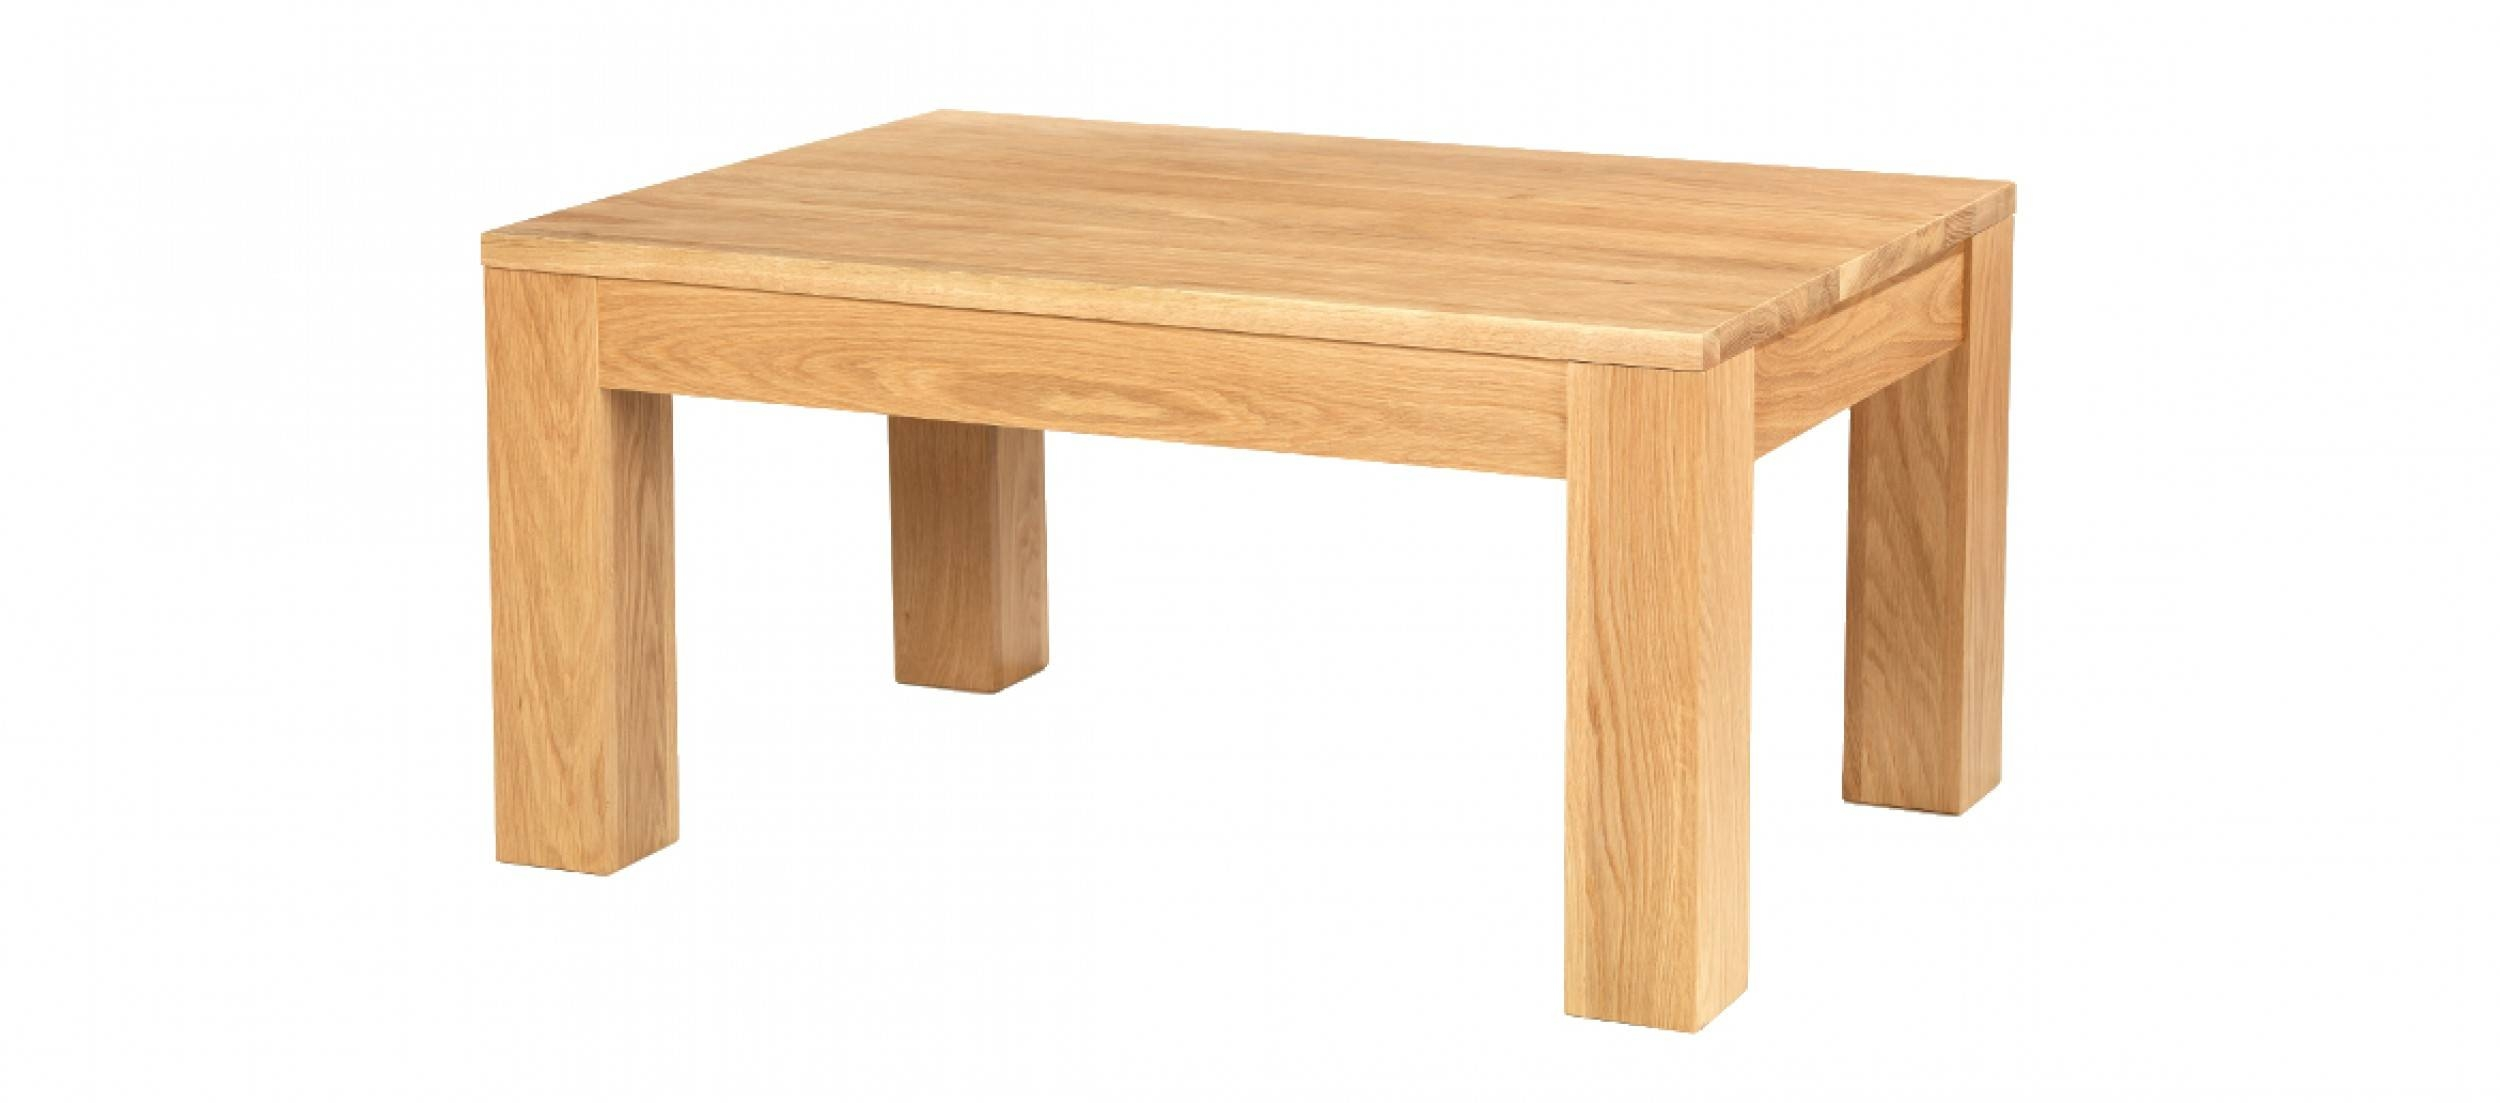 Cube Oak Coffee Table | Quercus Living With Chunky Oak Coffee Tables (View 16 of 30)